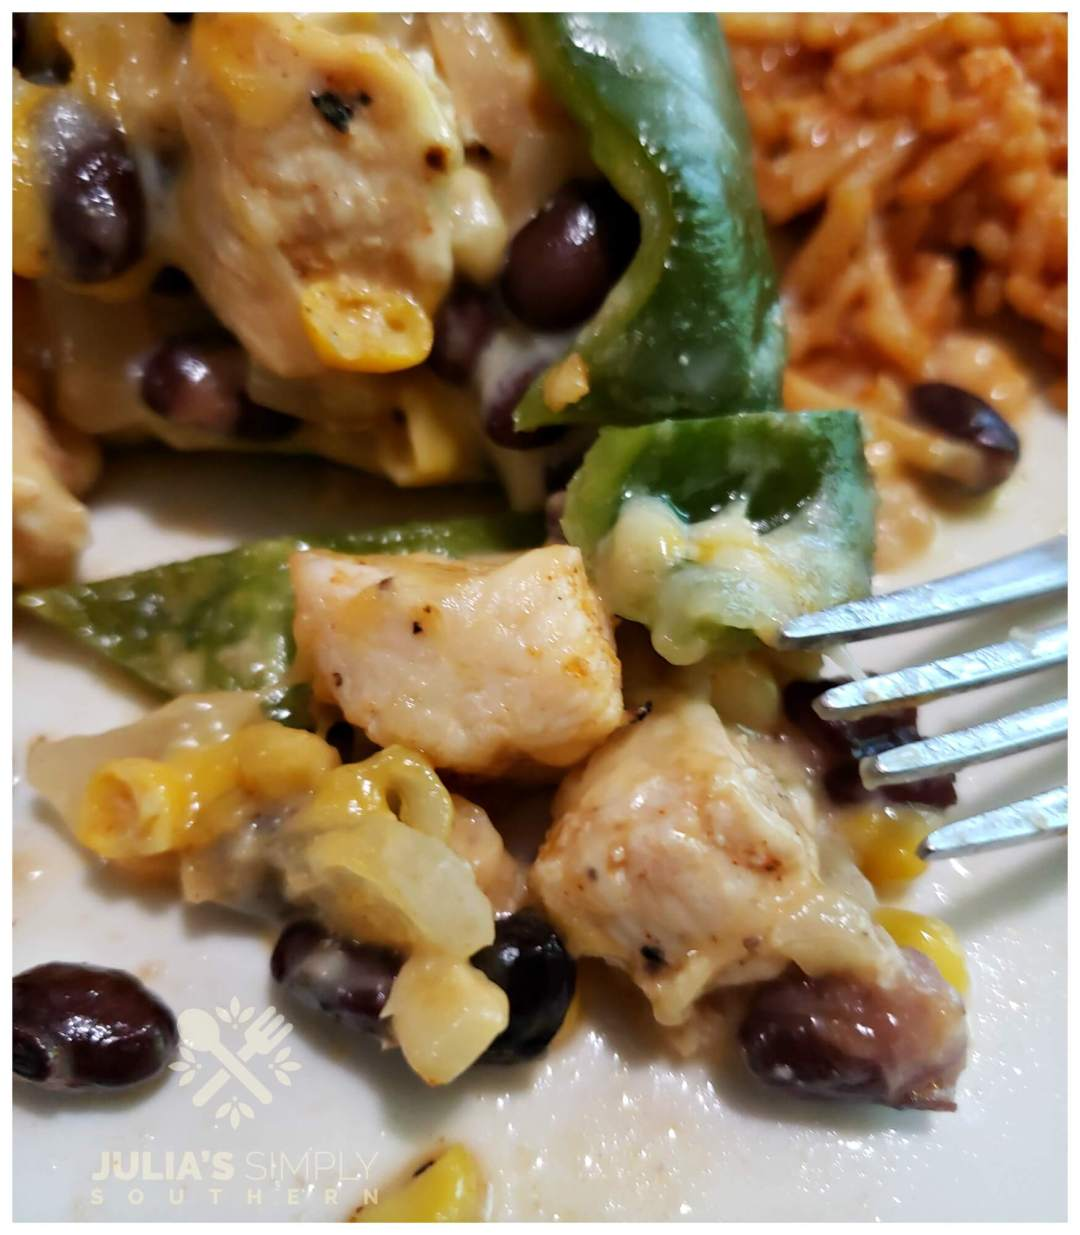 Bite of Southwest chicken stuffed poblano peppers with fresh corn and black beans with melted Mexican cheese blend.